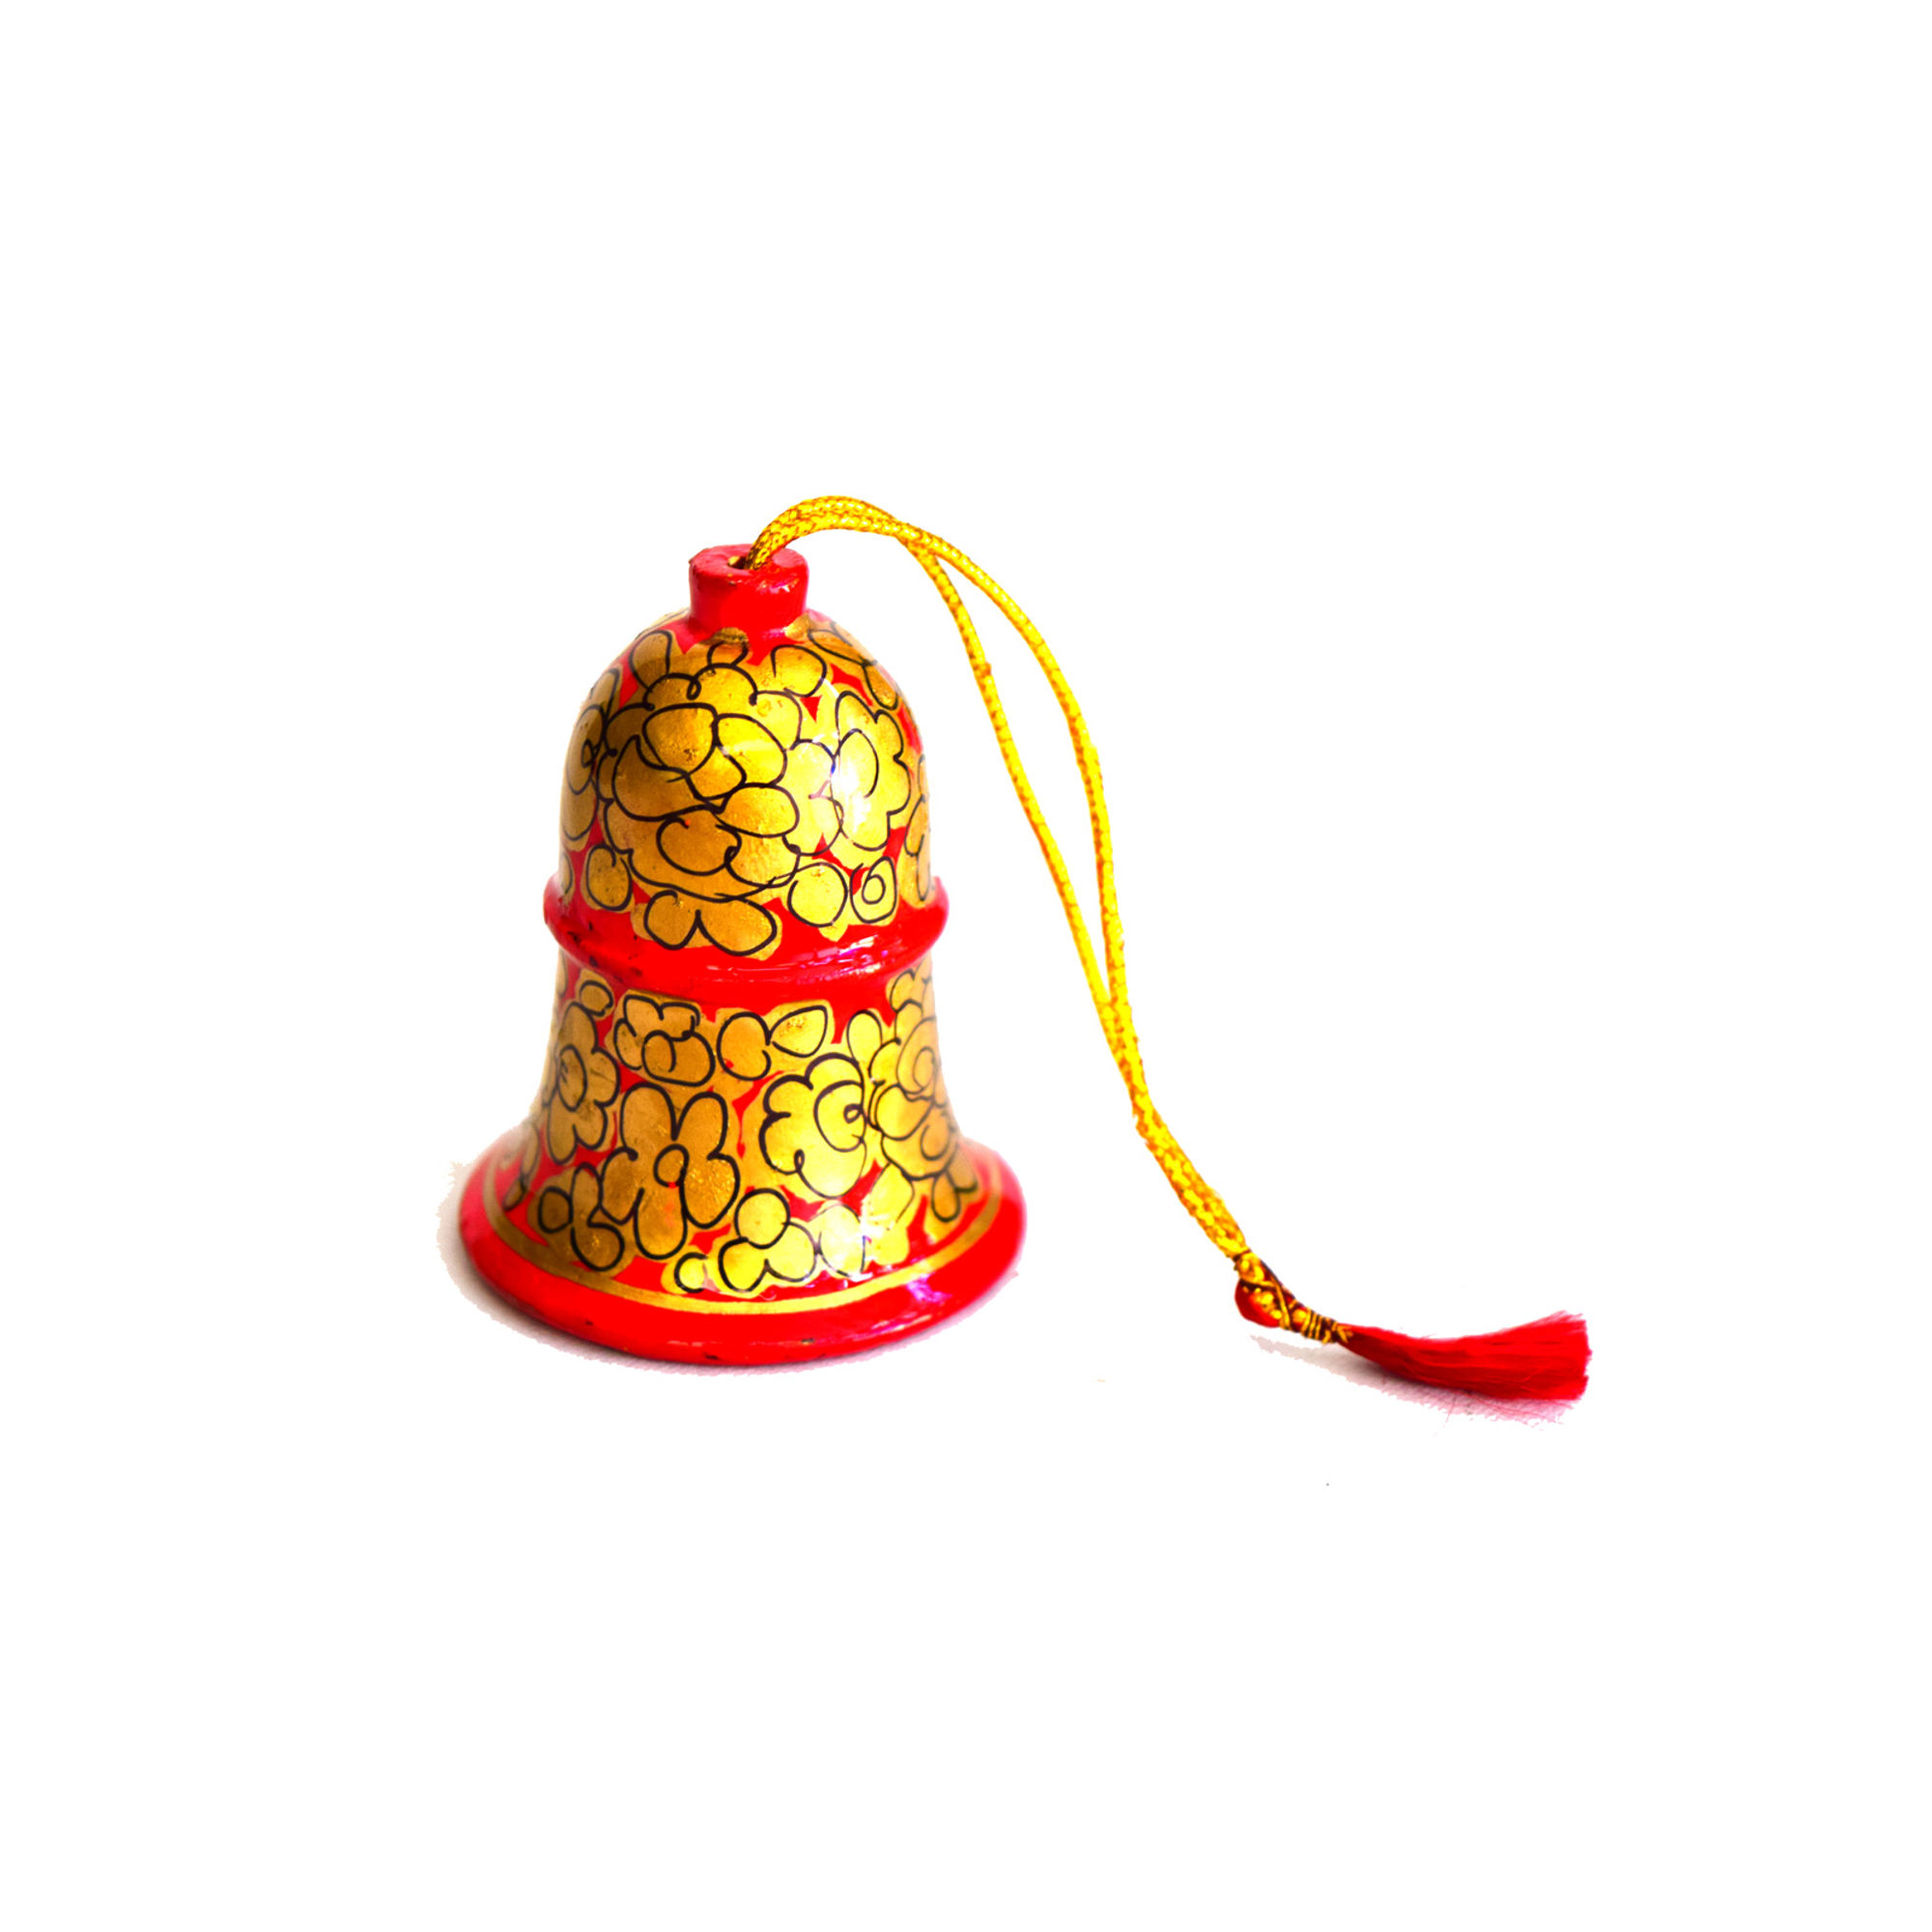 Kashmiri Beautiful Decorative Bell,  Small, Red with Golden Flowers